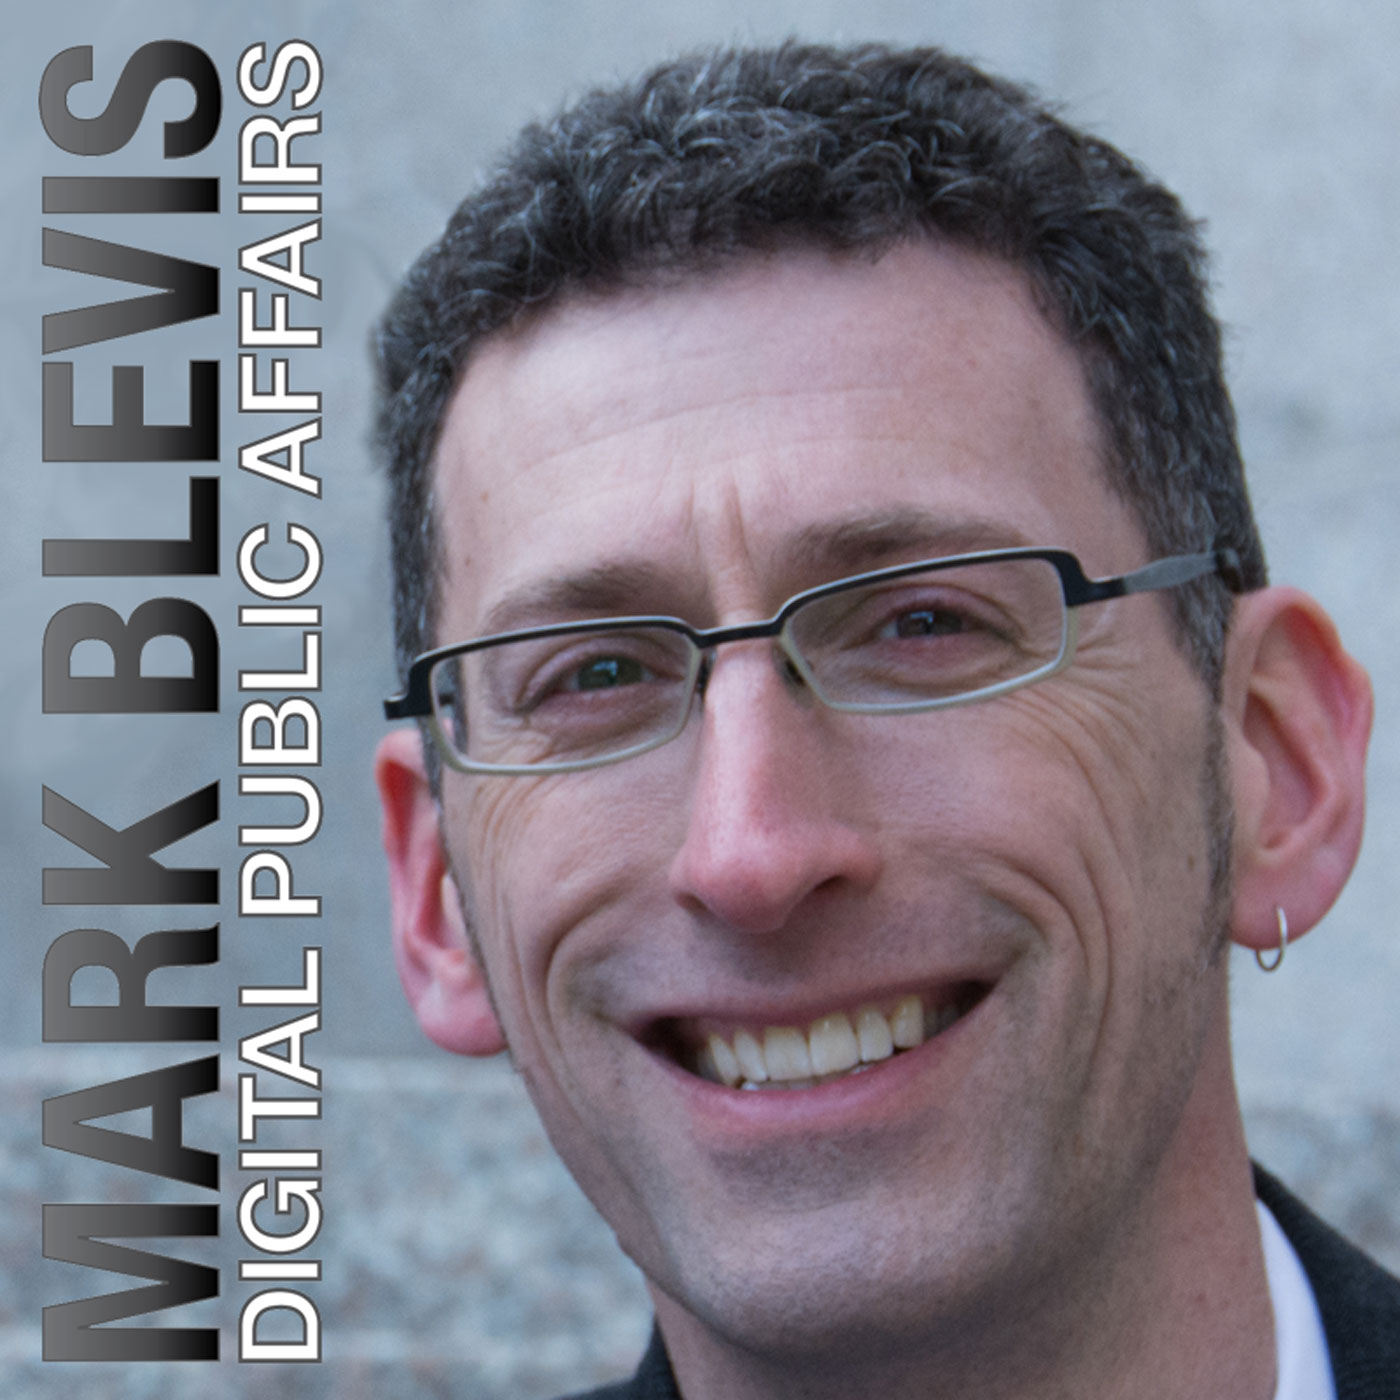 Digital Public Affairs with Mark Blevis